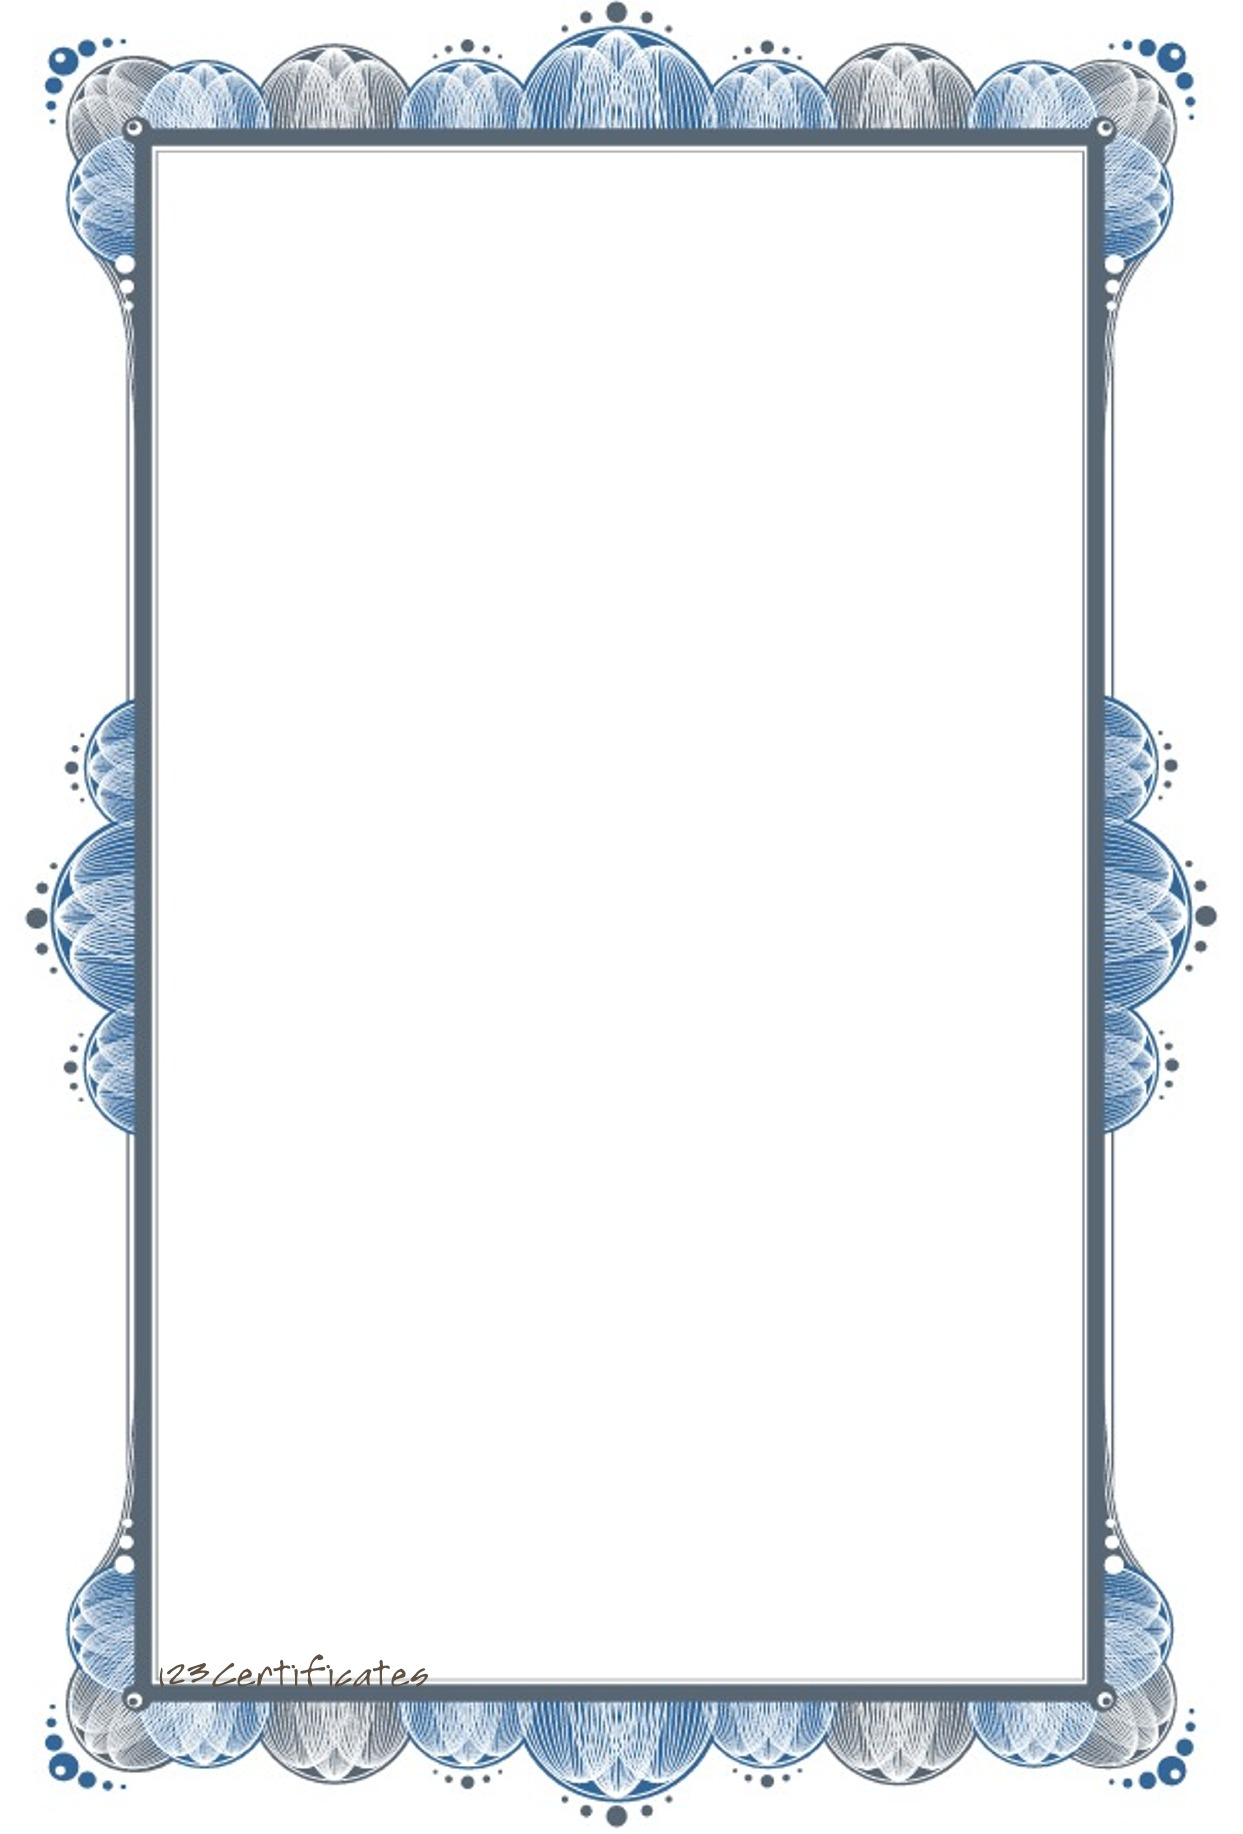 Borders for free download clipart Free certificate borders to download, certificate templates for ... clipart